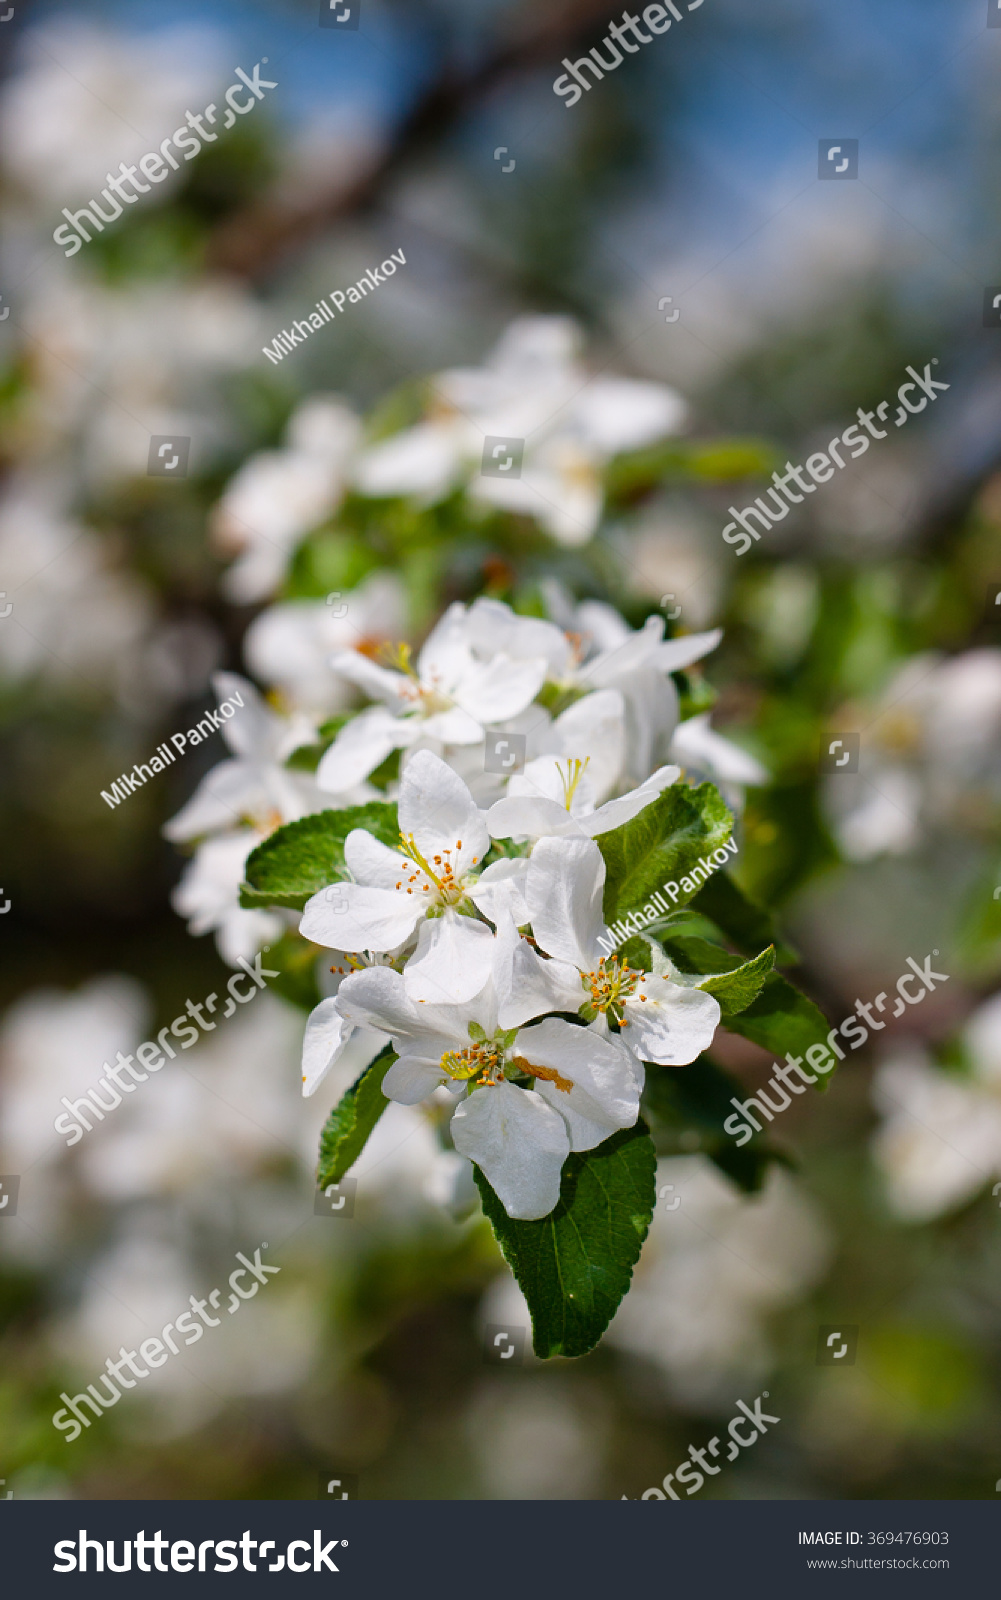 Branch With Flowers Of Blooming Apple Tree Selective Focusall